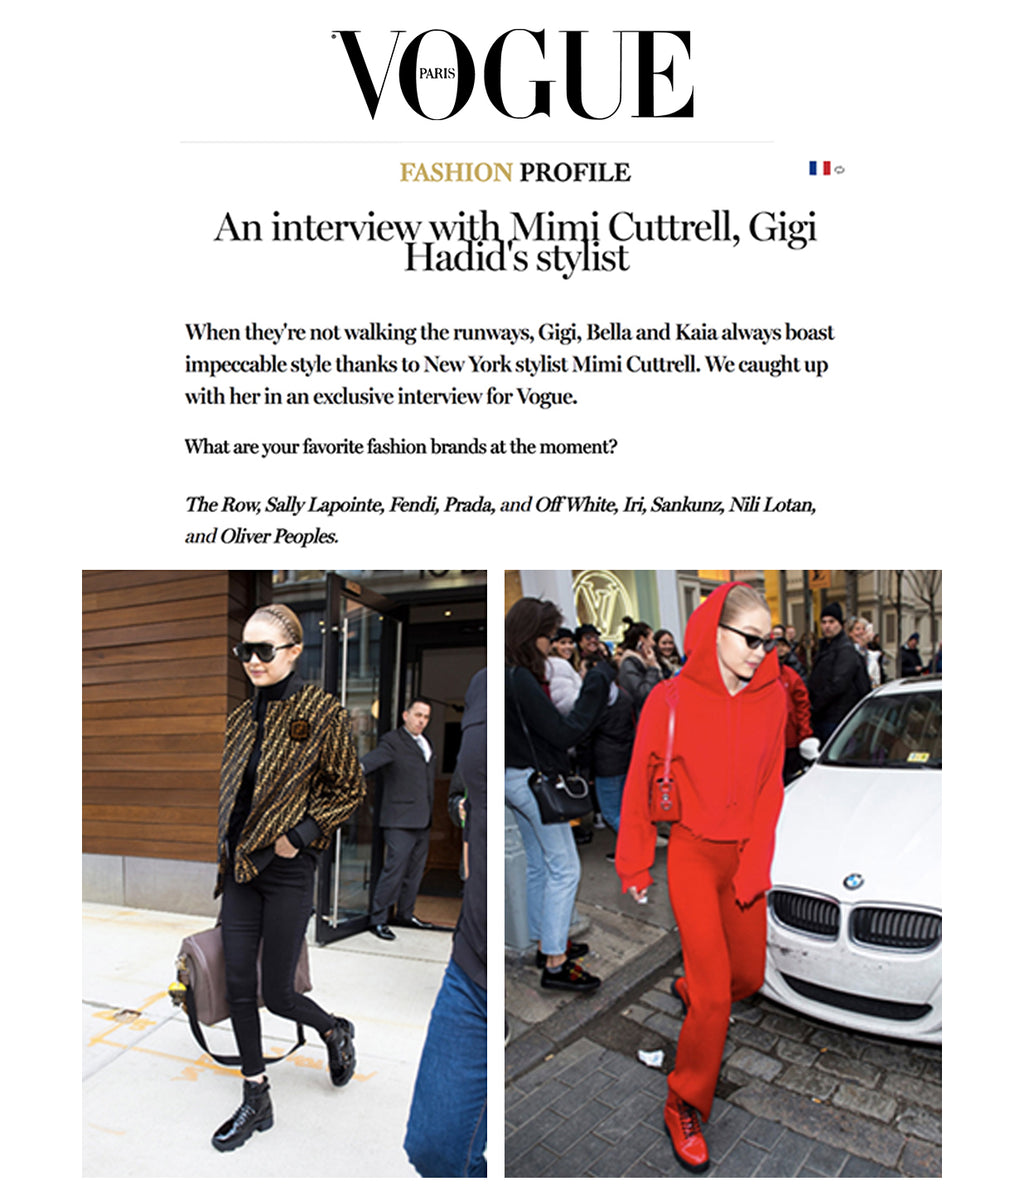 MAR 22, 2018 | iRi Mentioned in Vogue Paris Interview with Mimi